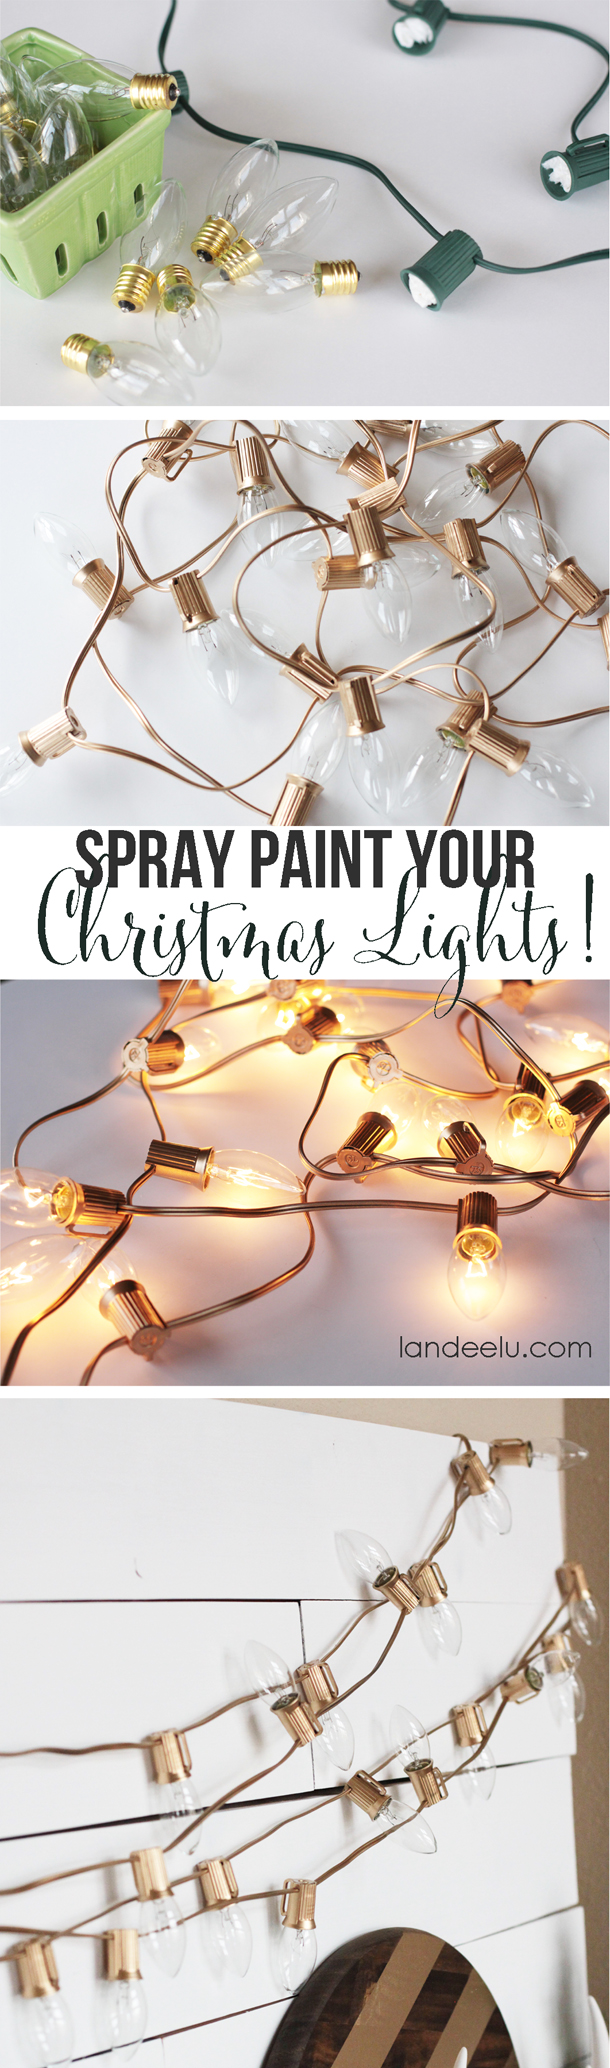 Decorate Your Mantel Piece with Gold Lights